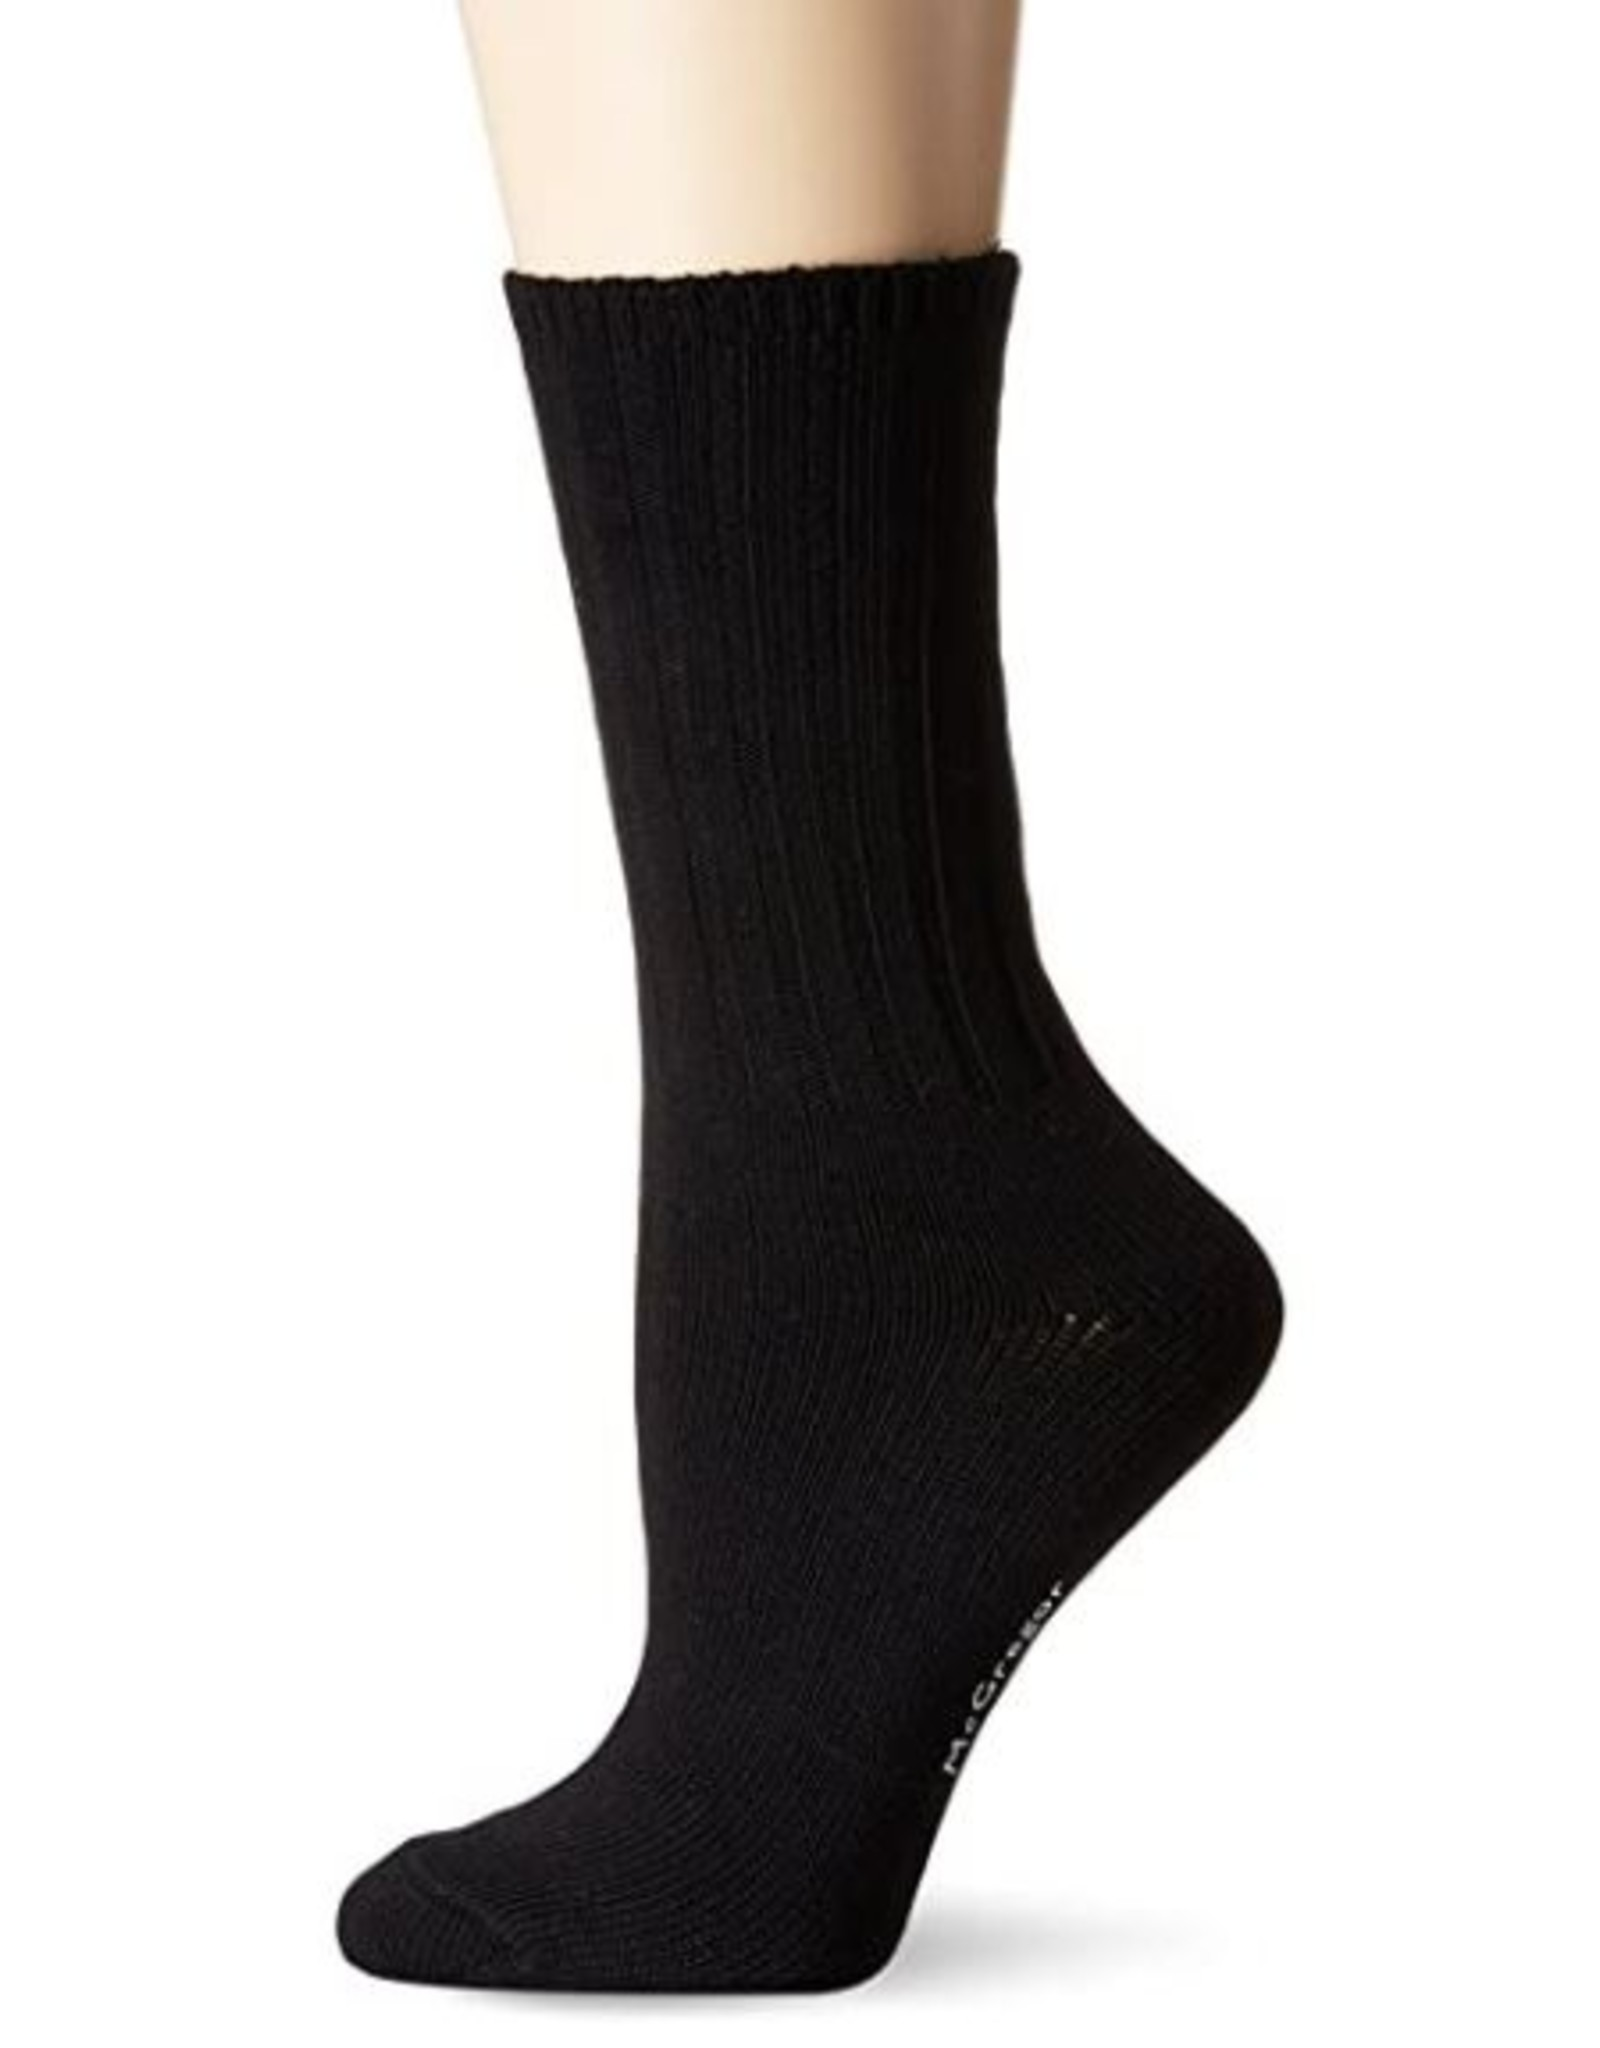 McGregor Socks Women's Weekender Cotton Sock - Black